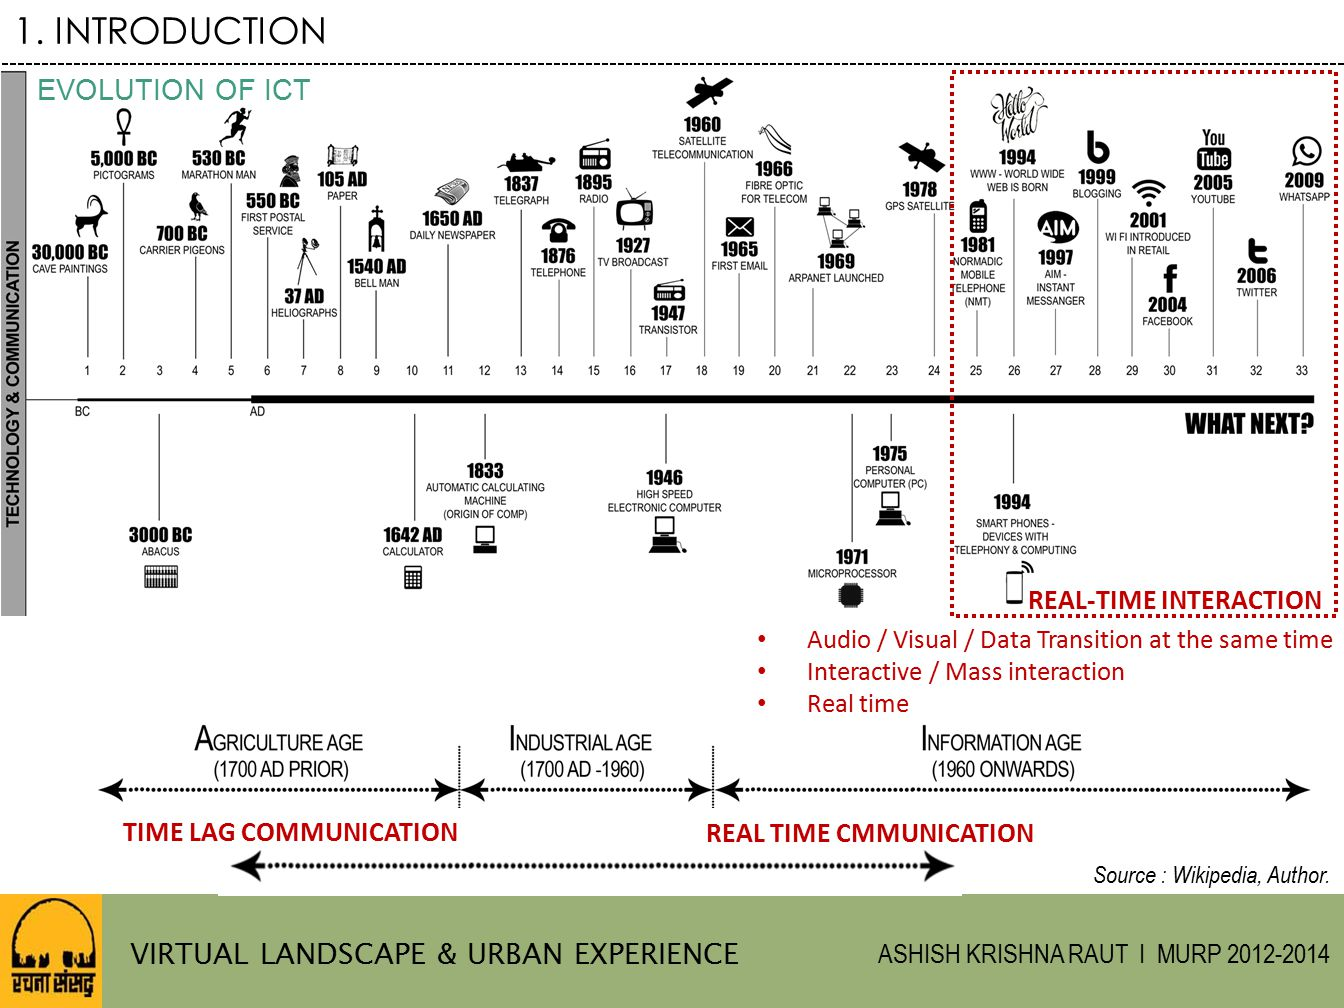 1. INTRODUCTION EVOLUTION OF ICT VIRTUAL LANDSCAPE & URBAN EXPERIENCE